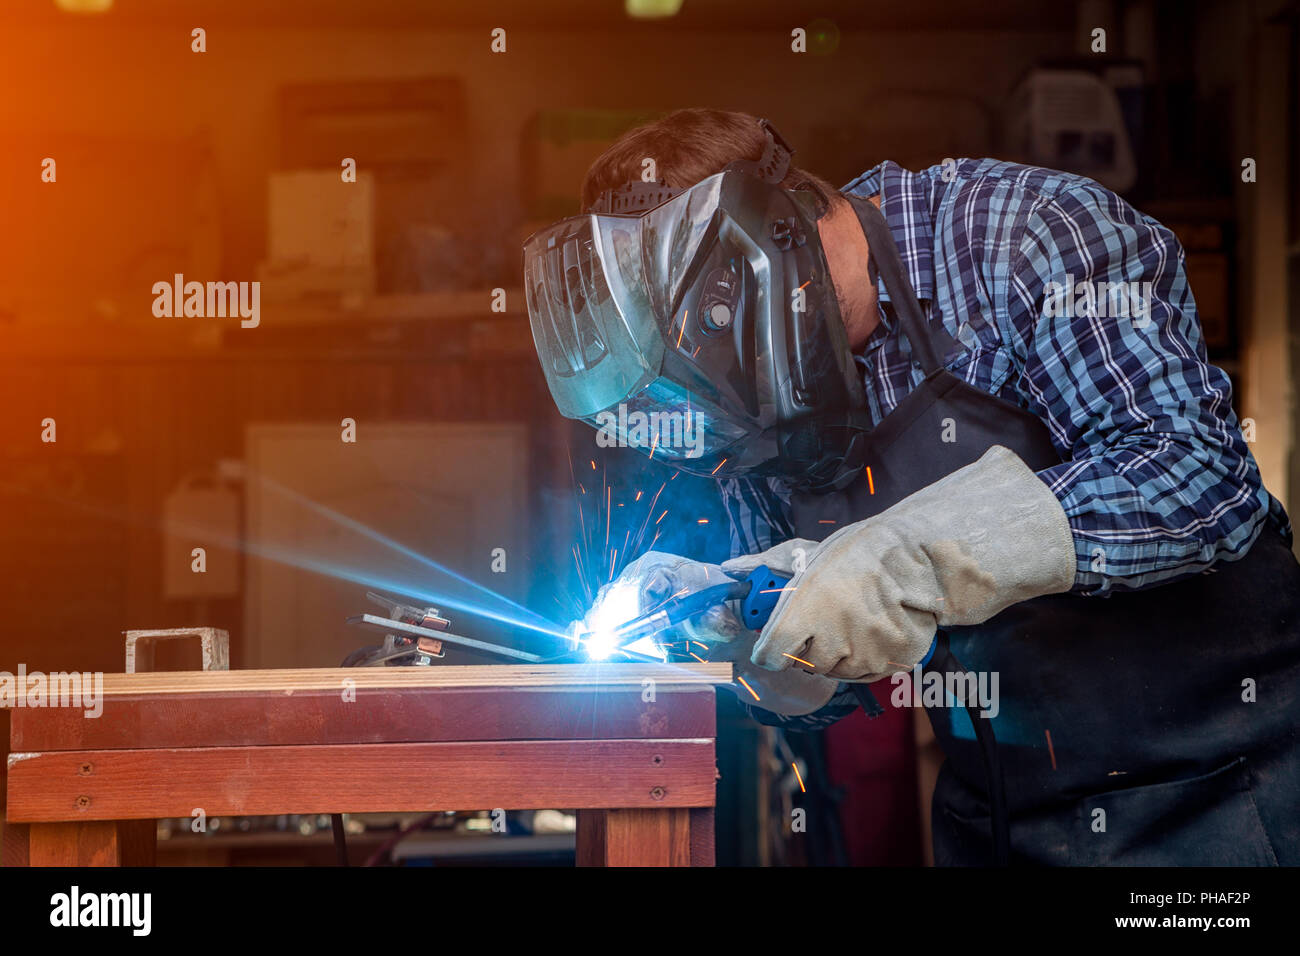 Strong Man Welder In Work Clothes Hard Working And Welds With A Welding Machine Metal In The Workshop Stock Photo Alamy